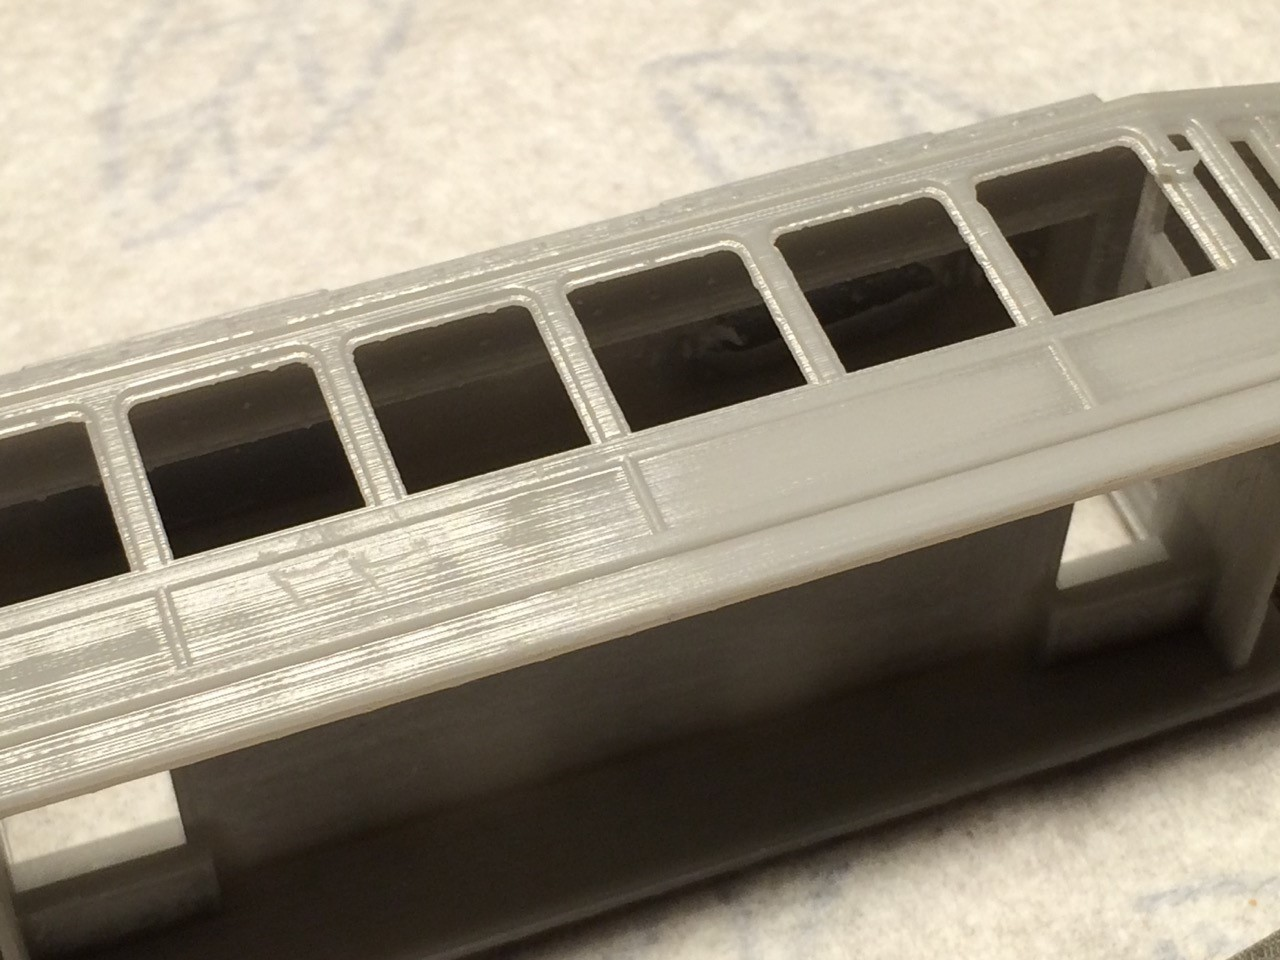 Tutorial: How to Paint a Prime Gray Scale Modell